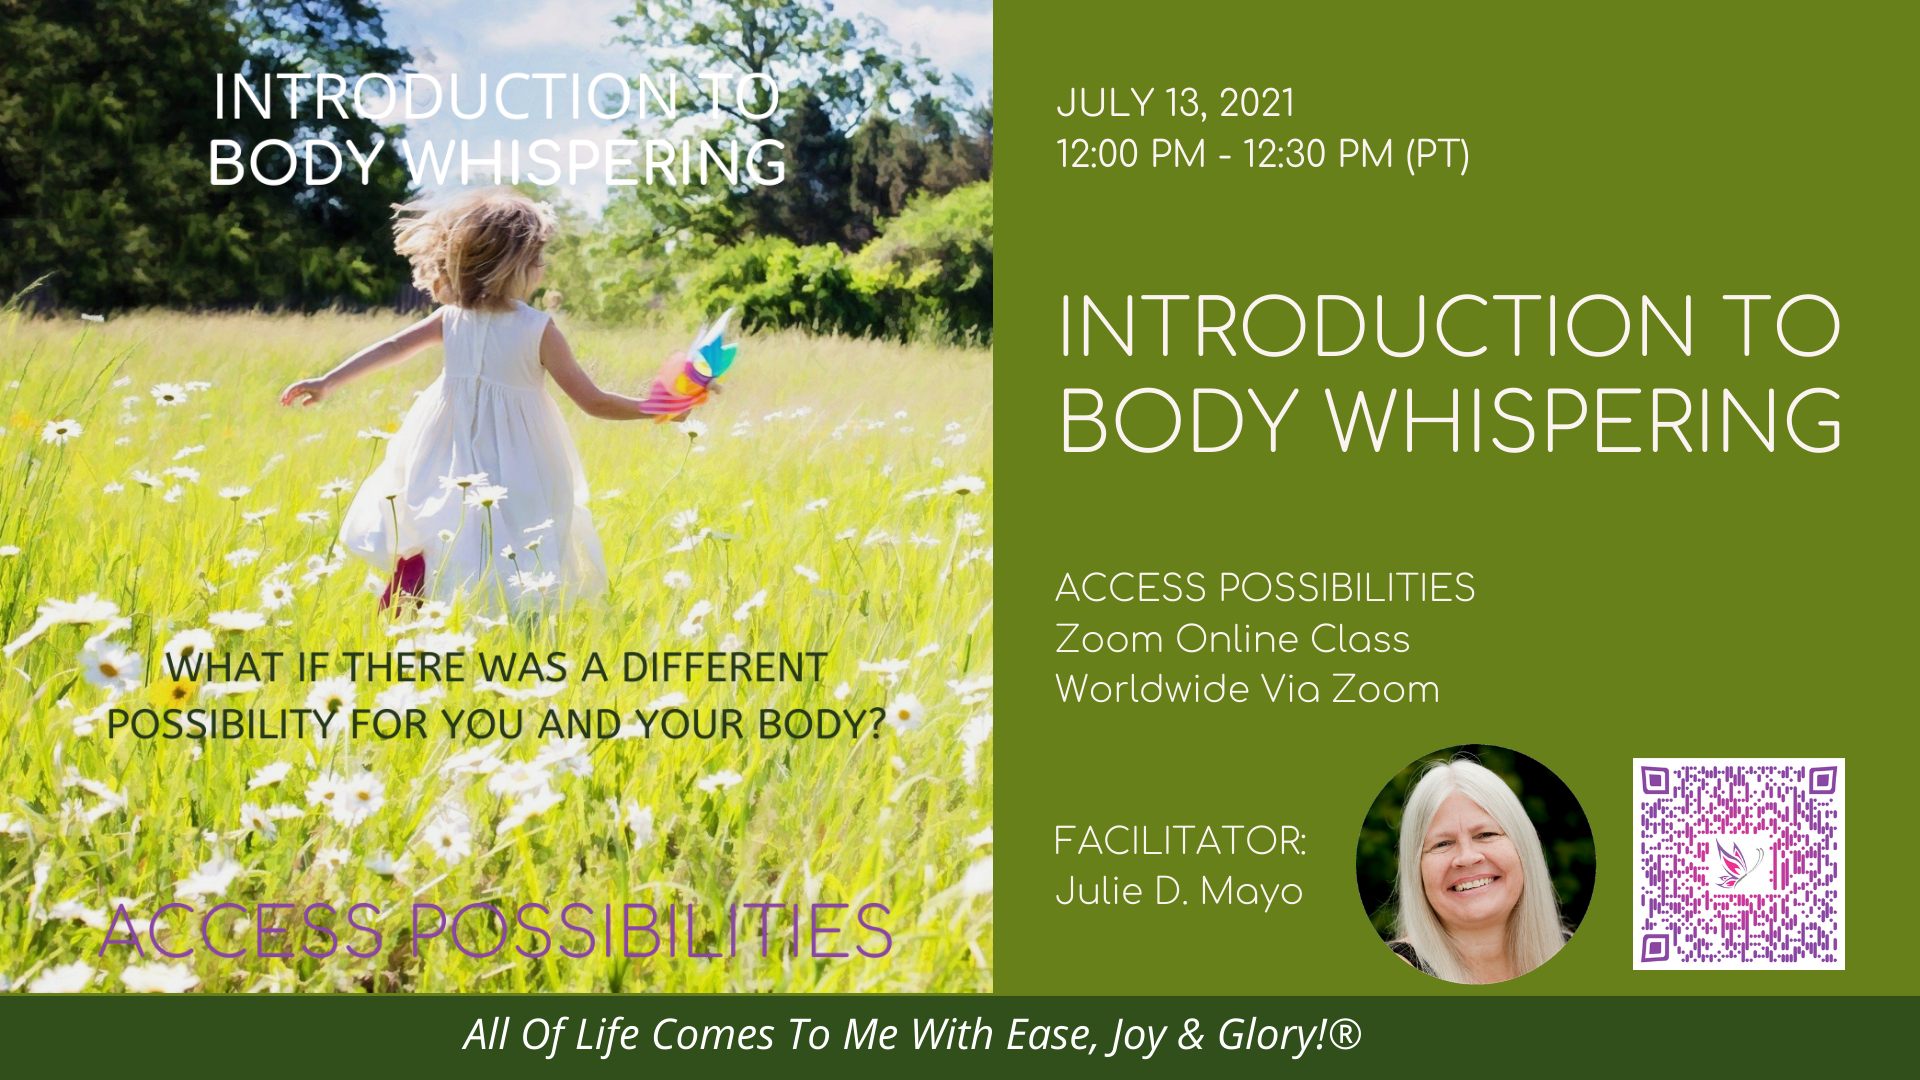 Introduction To Body Whispering Zoom Online Class Details   July 13   Access Possibilities